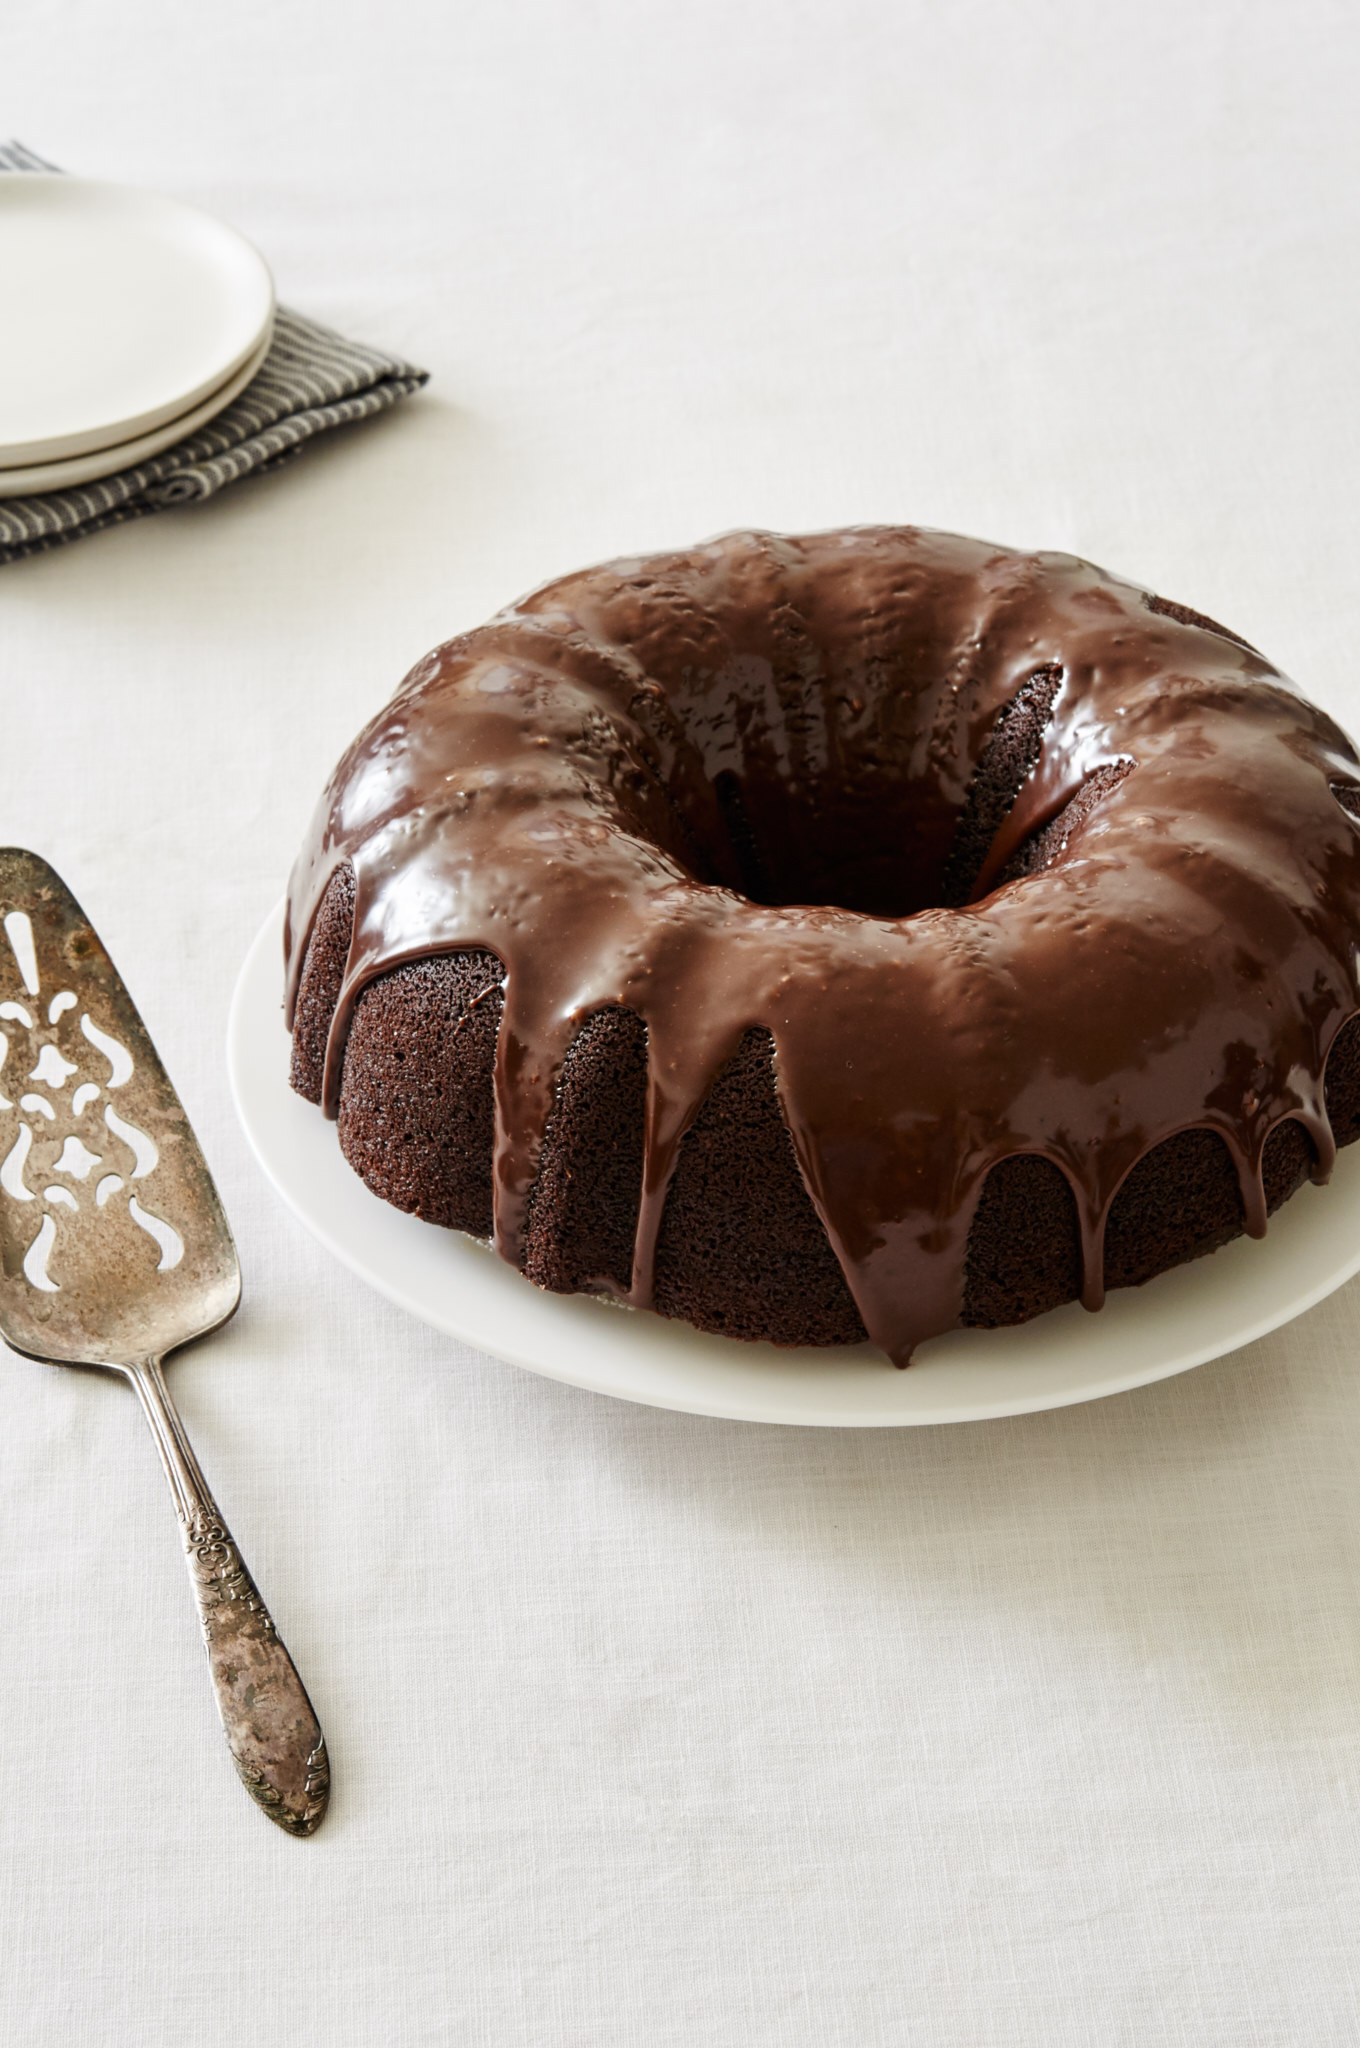 Warm your belly with this Bourbon Hot Chocolate Bundt Cake | Ibakeheshoots.com